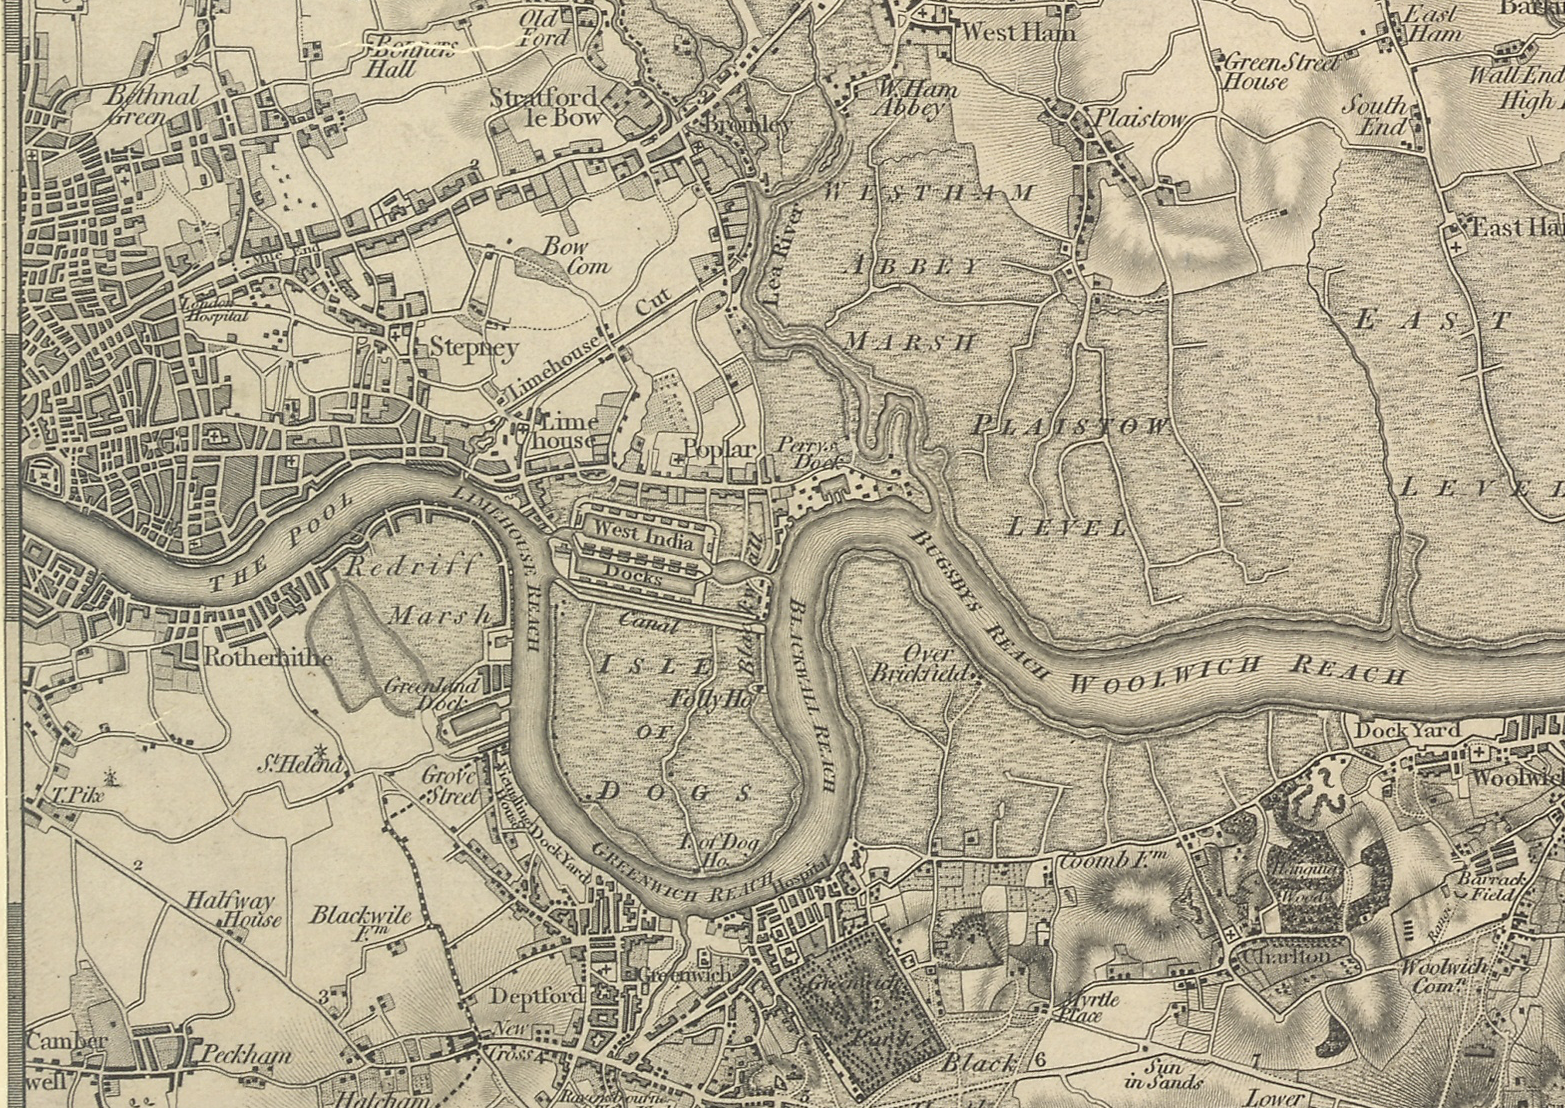 East London and Thames Estuary from the OS Sheet 1, 1805. This work is based on data provided through www.VisionofBritain.org.uk and uses historical material which is copyright of the Great Britain Historical GIS Project and the University of Portsmouth.